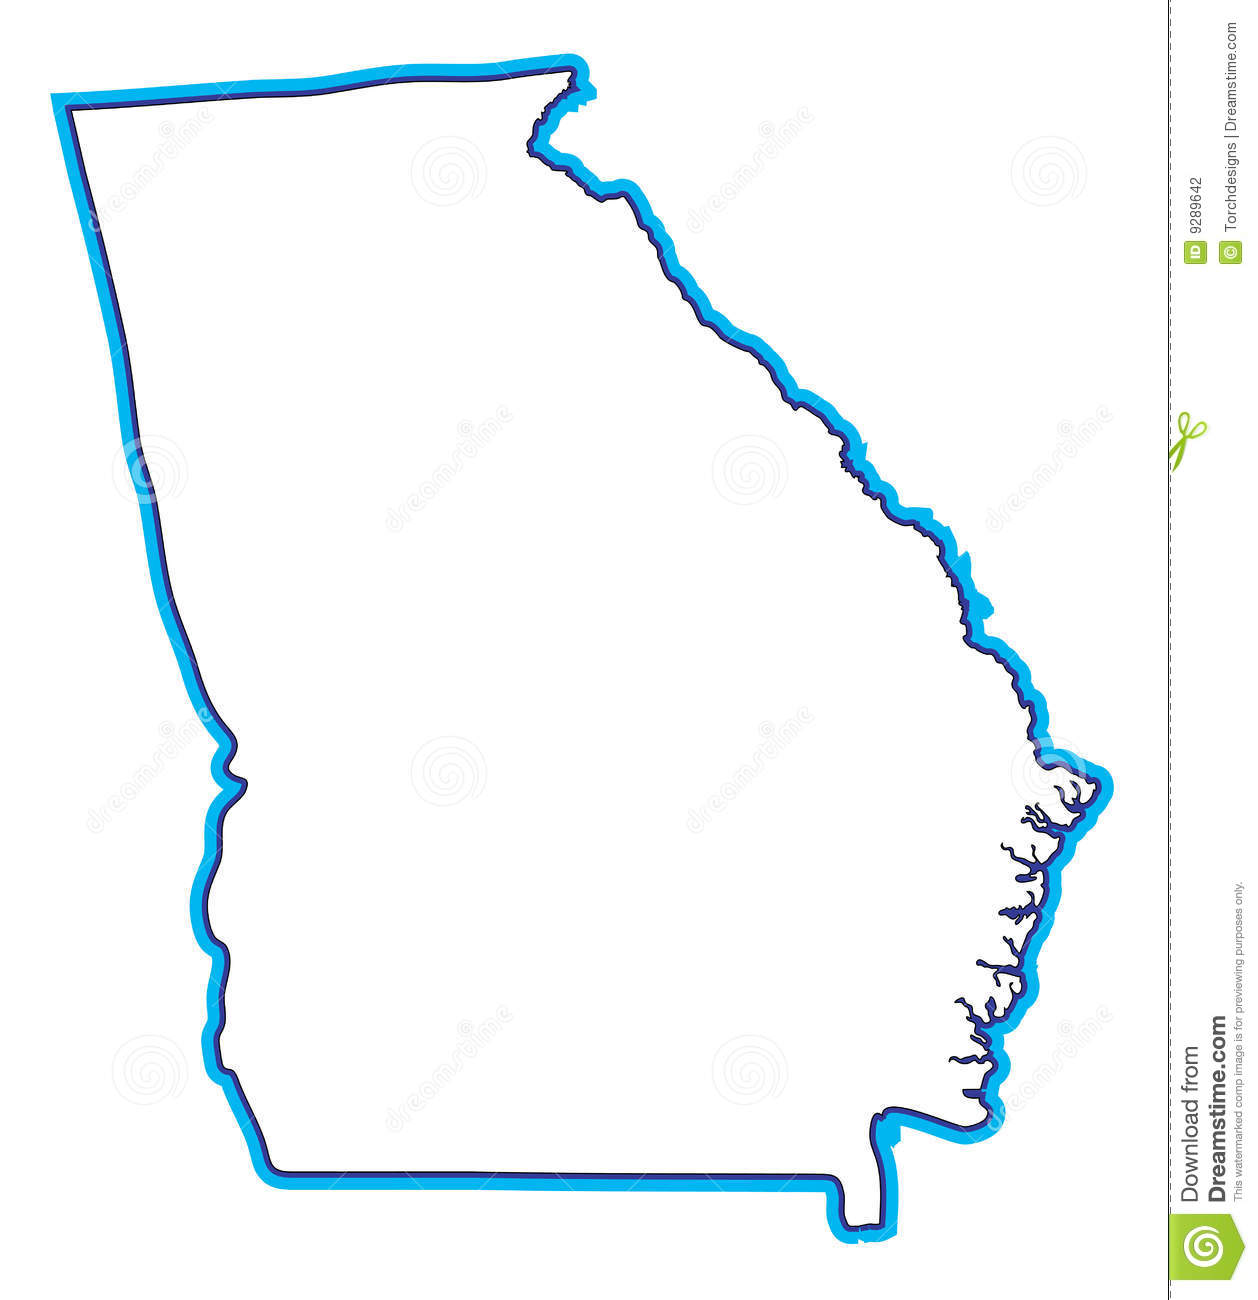 Georgia Map Illustration Stock Photography Image - Georgia map vector free download